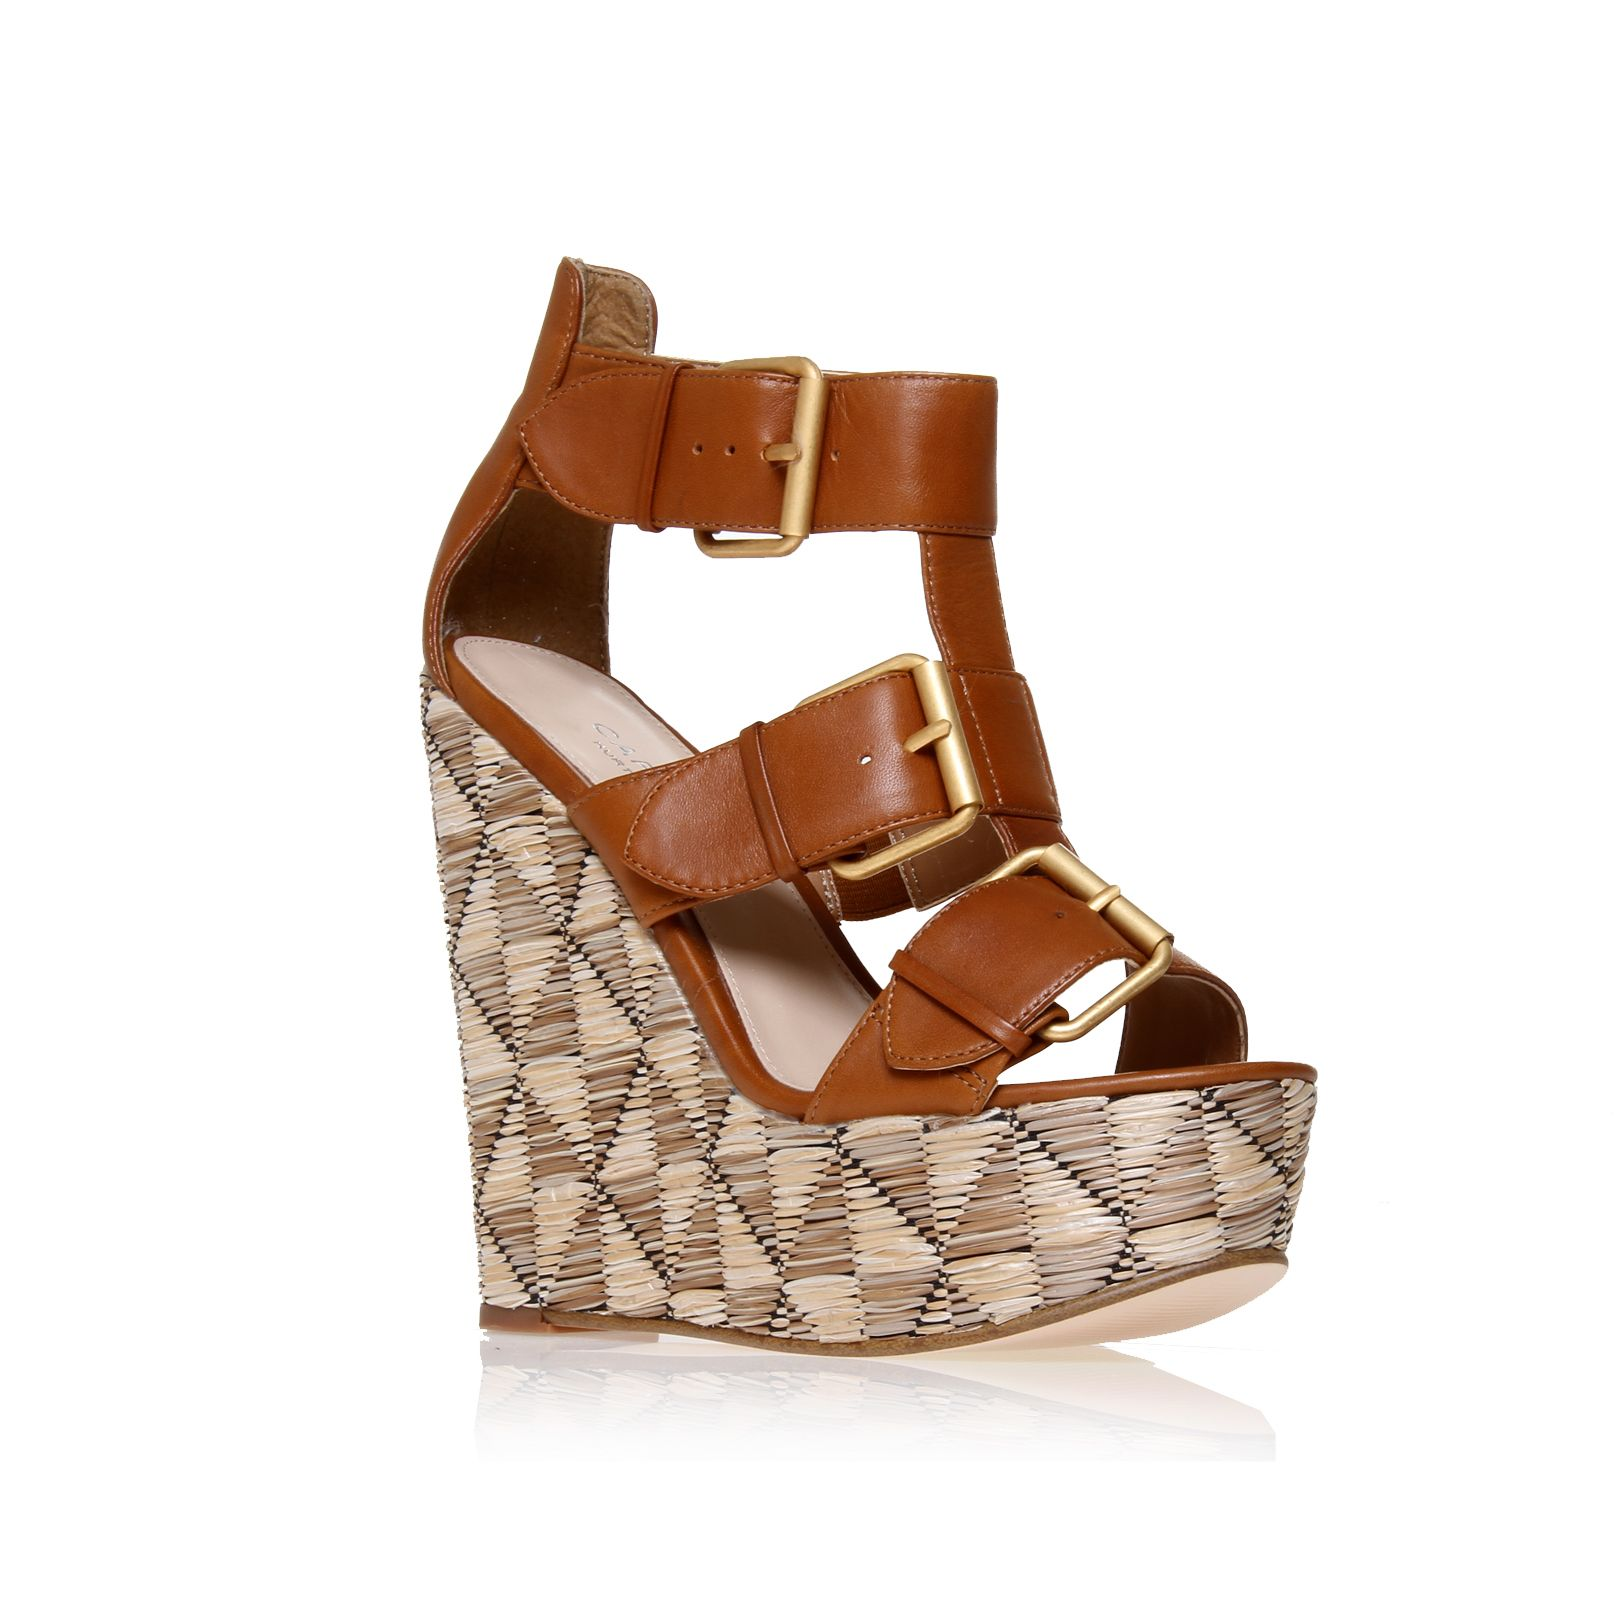 Krook wedge sandals